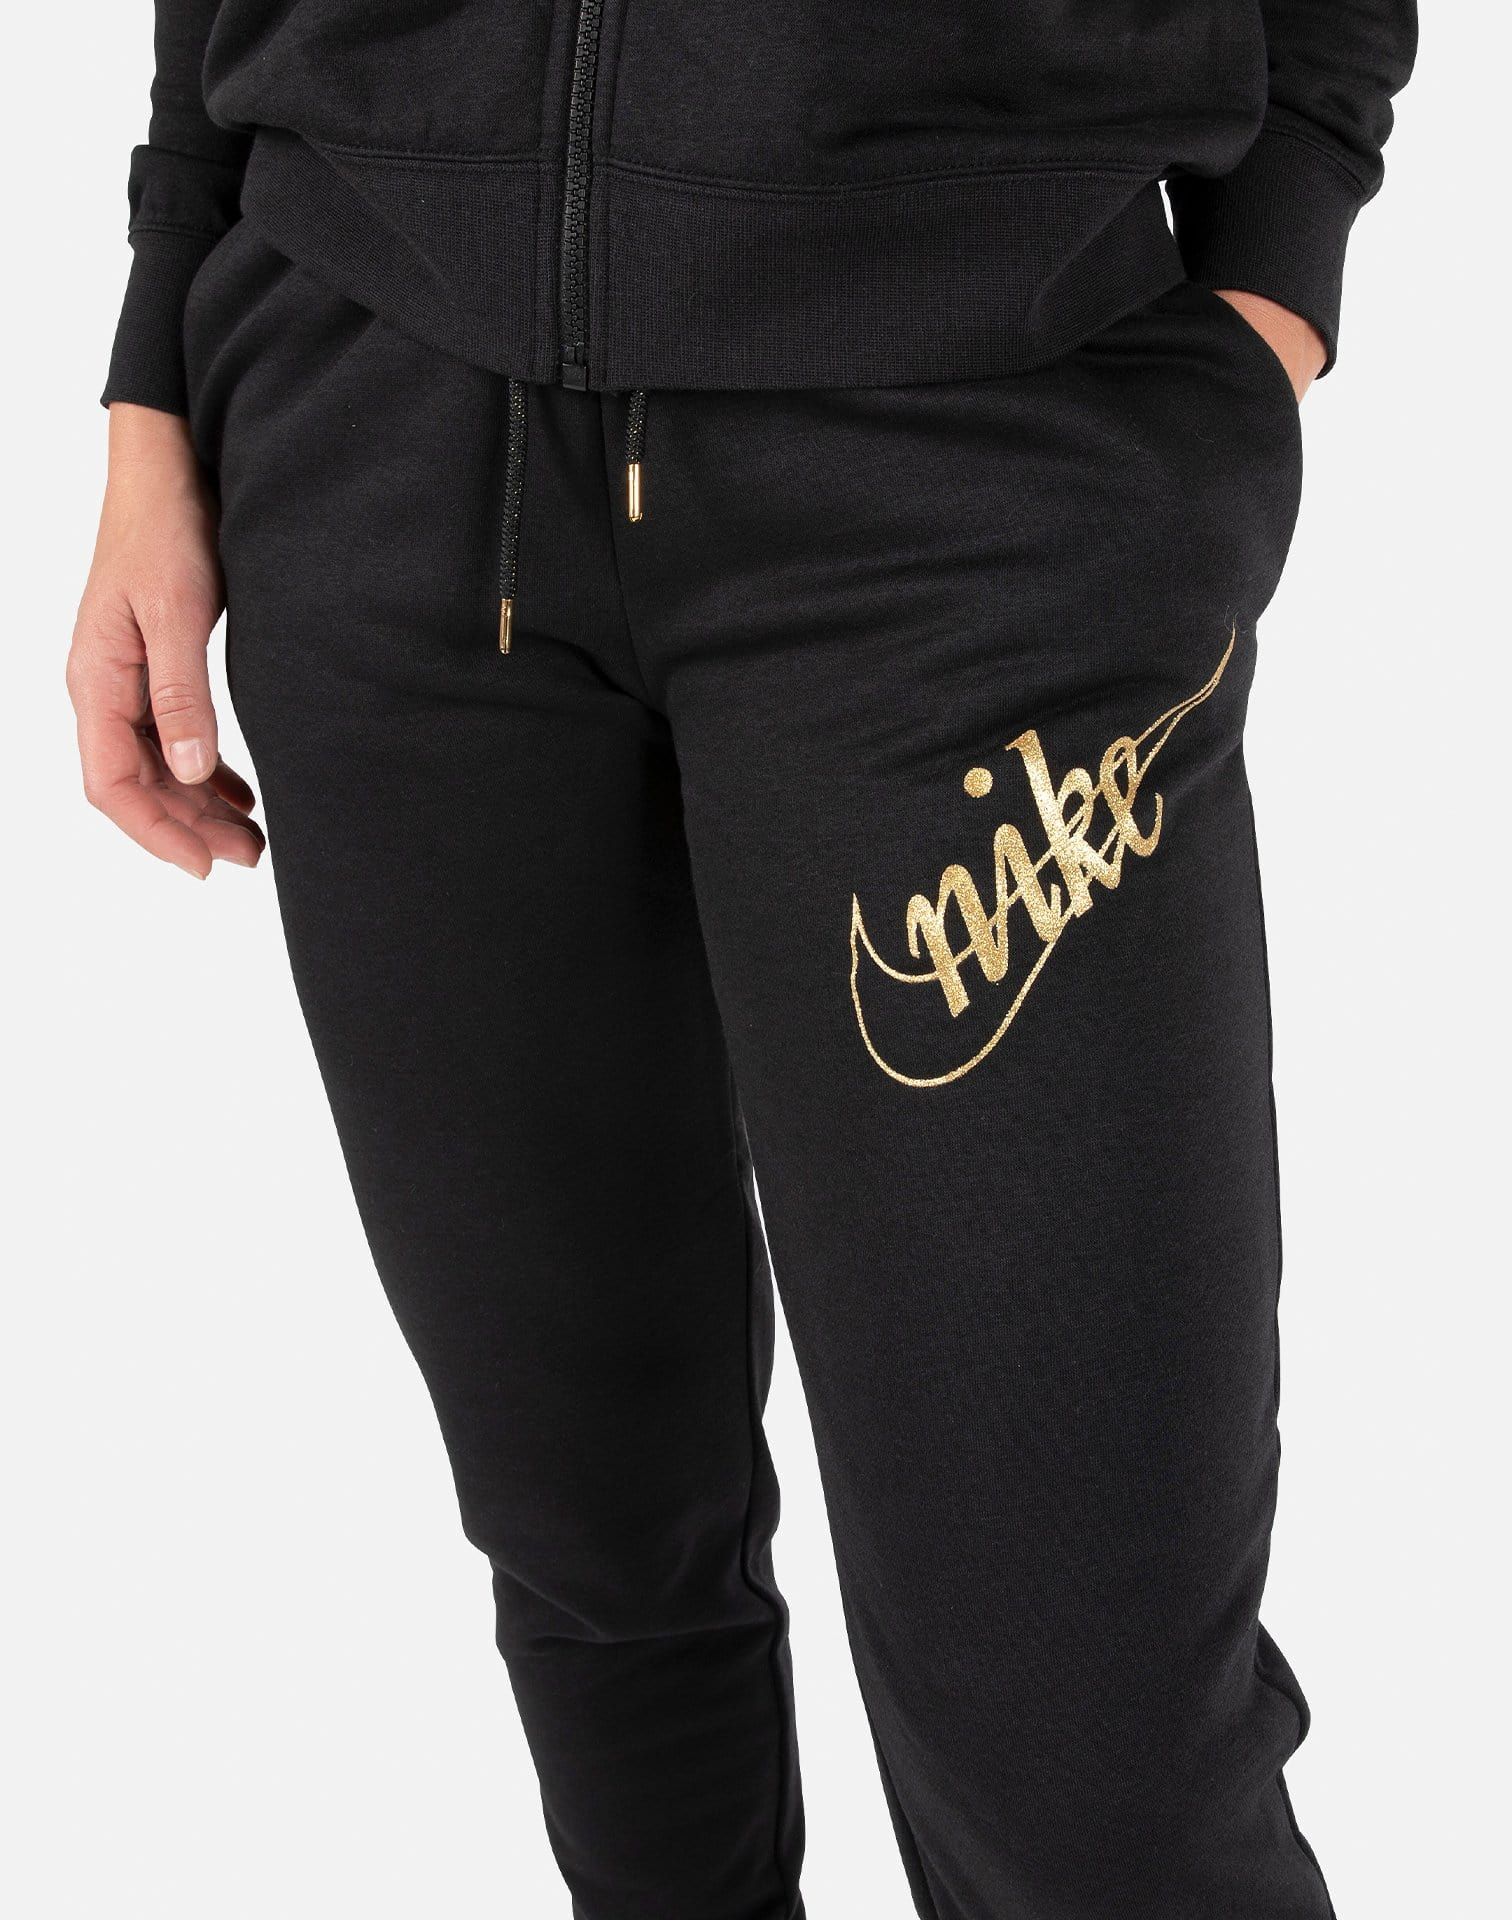 Nike Women's Glitter Fleece Jogger Pants